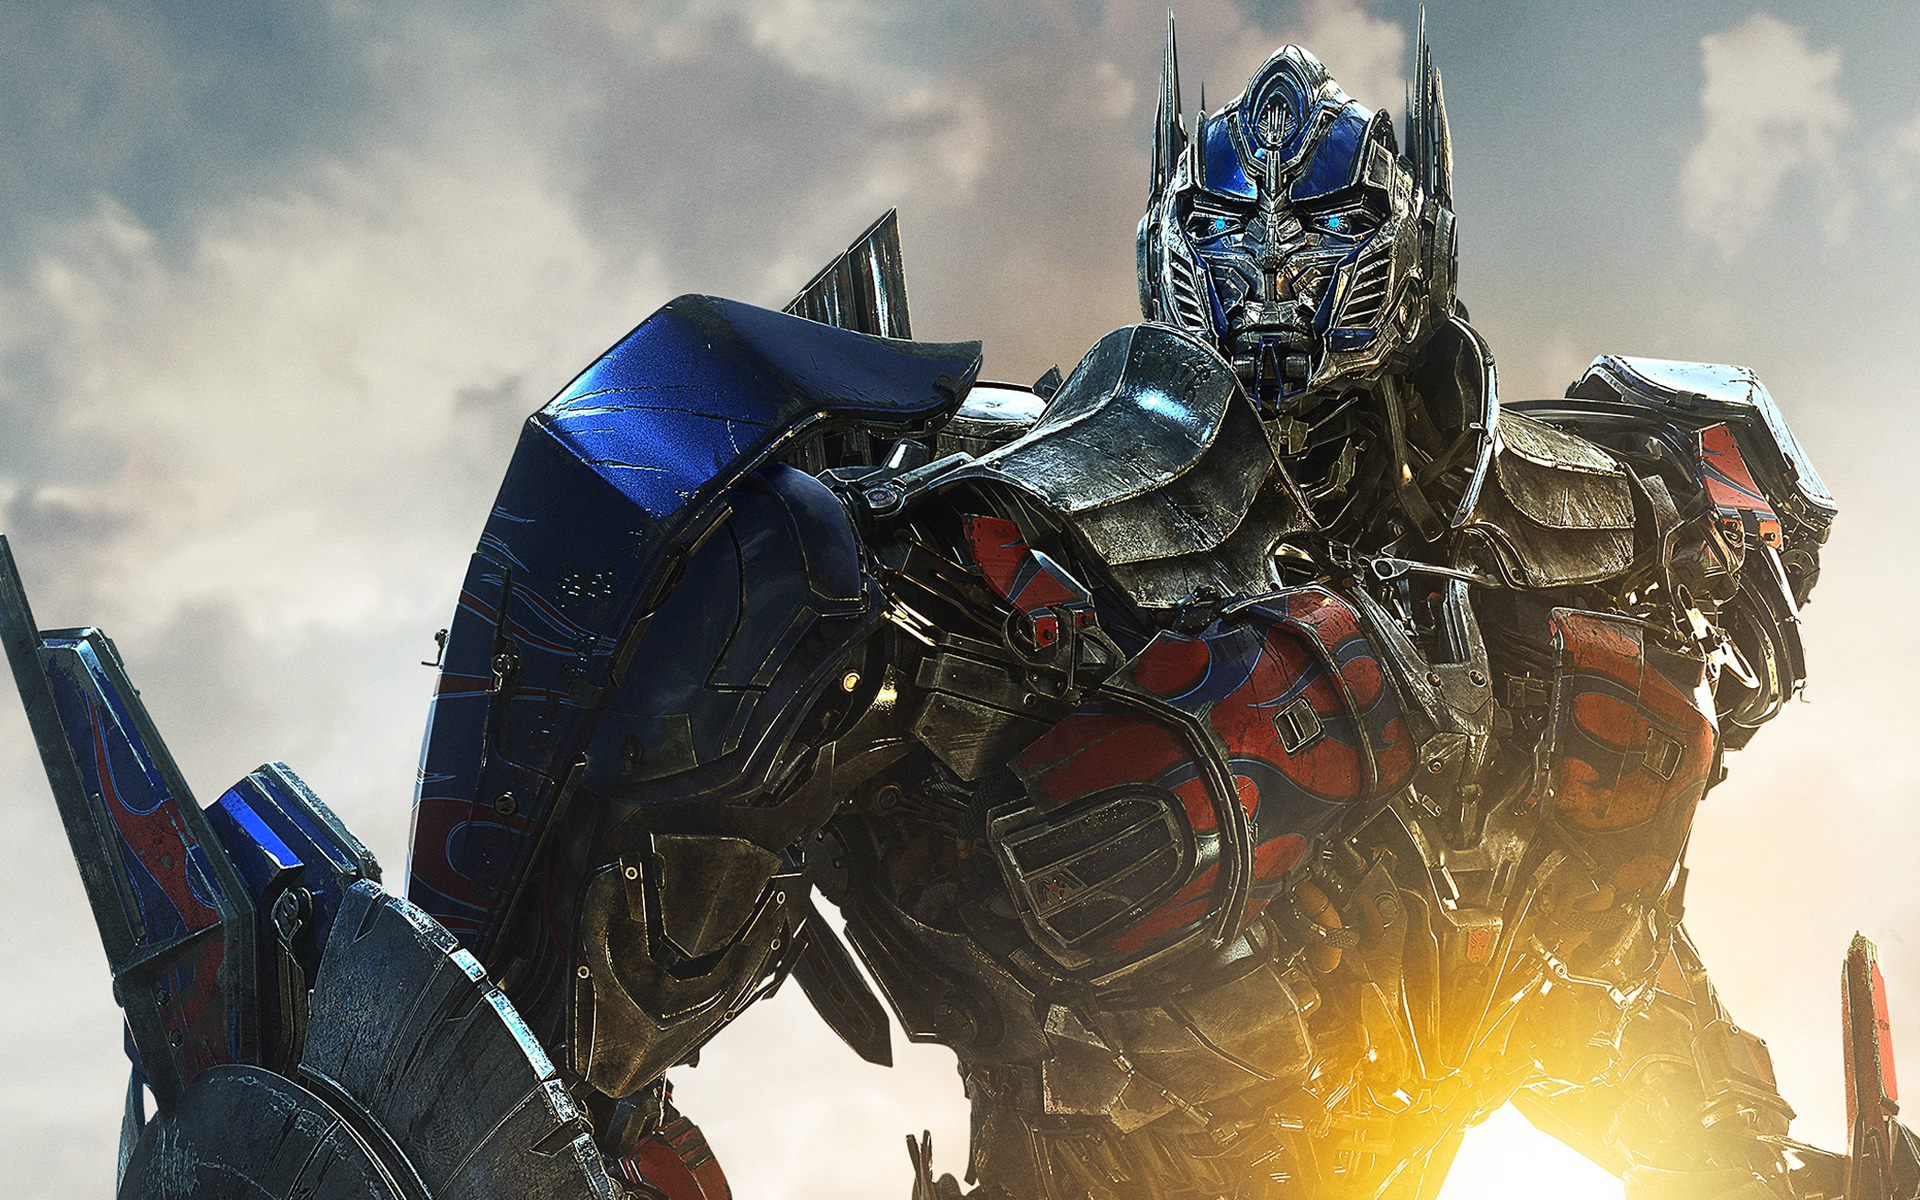 HD Wallpapers Transformers Age of Extinction Optimus Prime